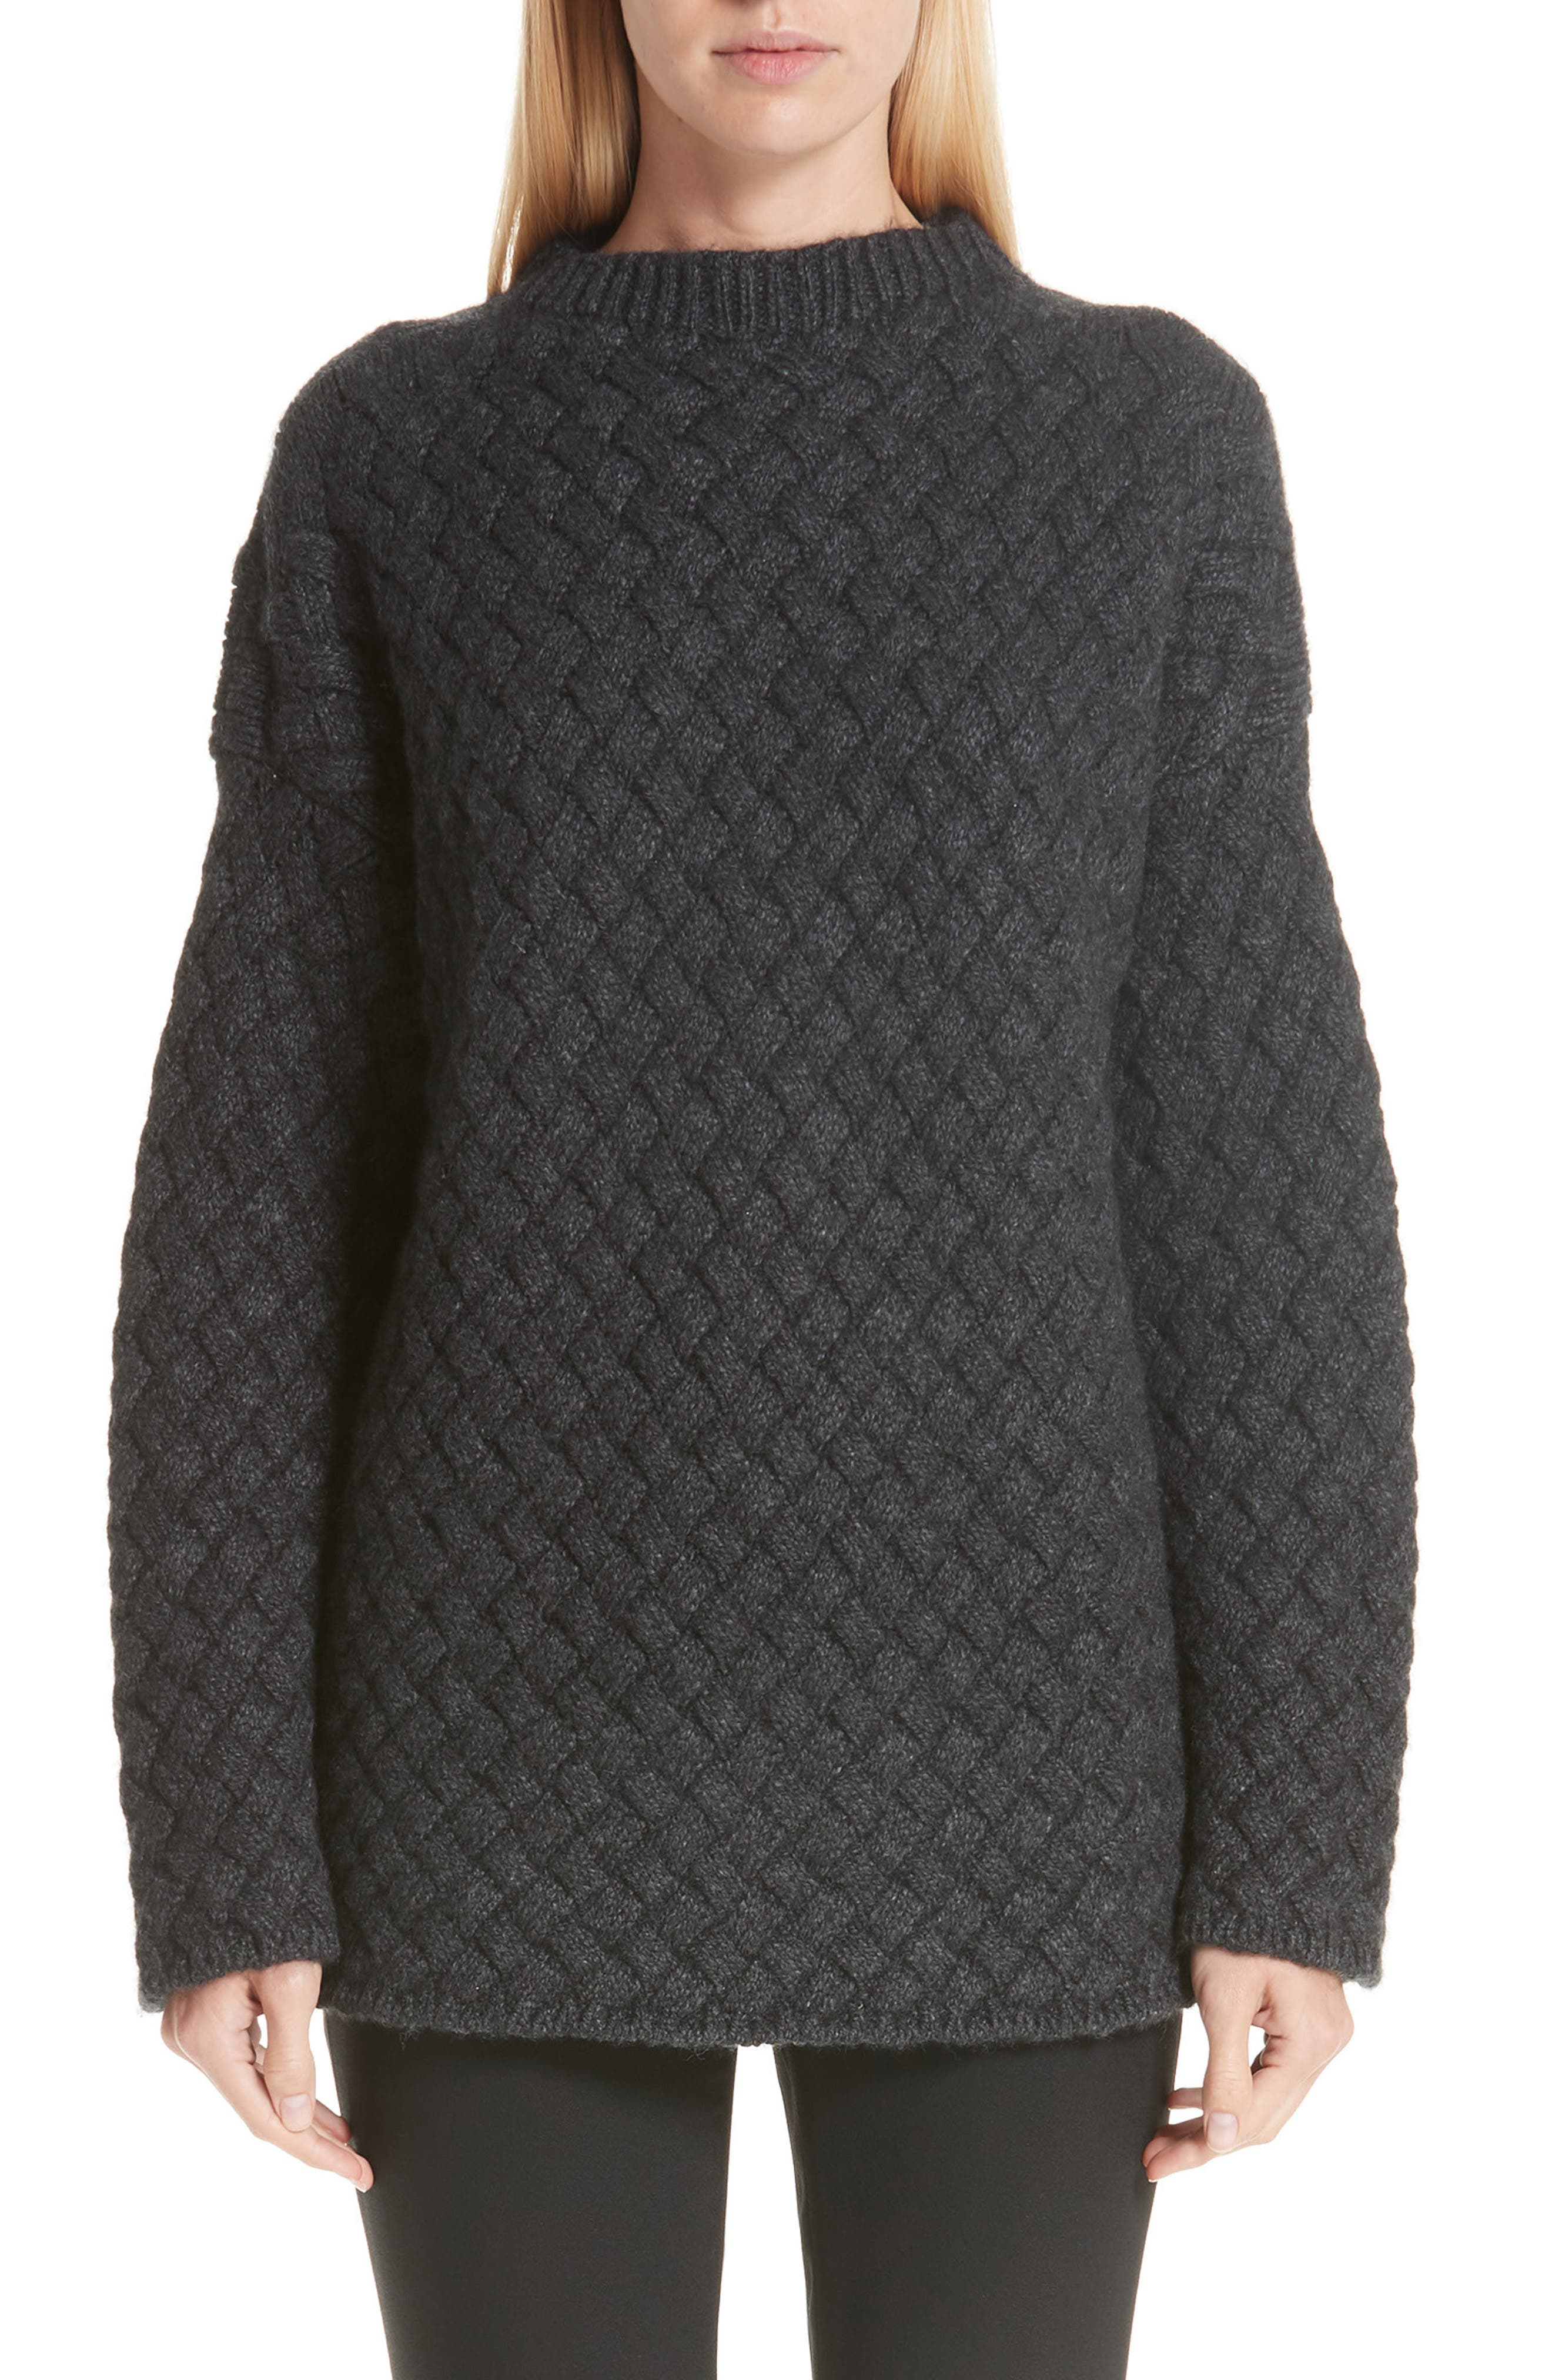 Oversized Braided Cashmere Sweater,                             Main thumbnail 1, color,                             DARK GREY